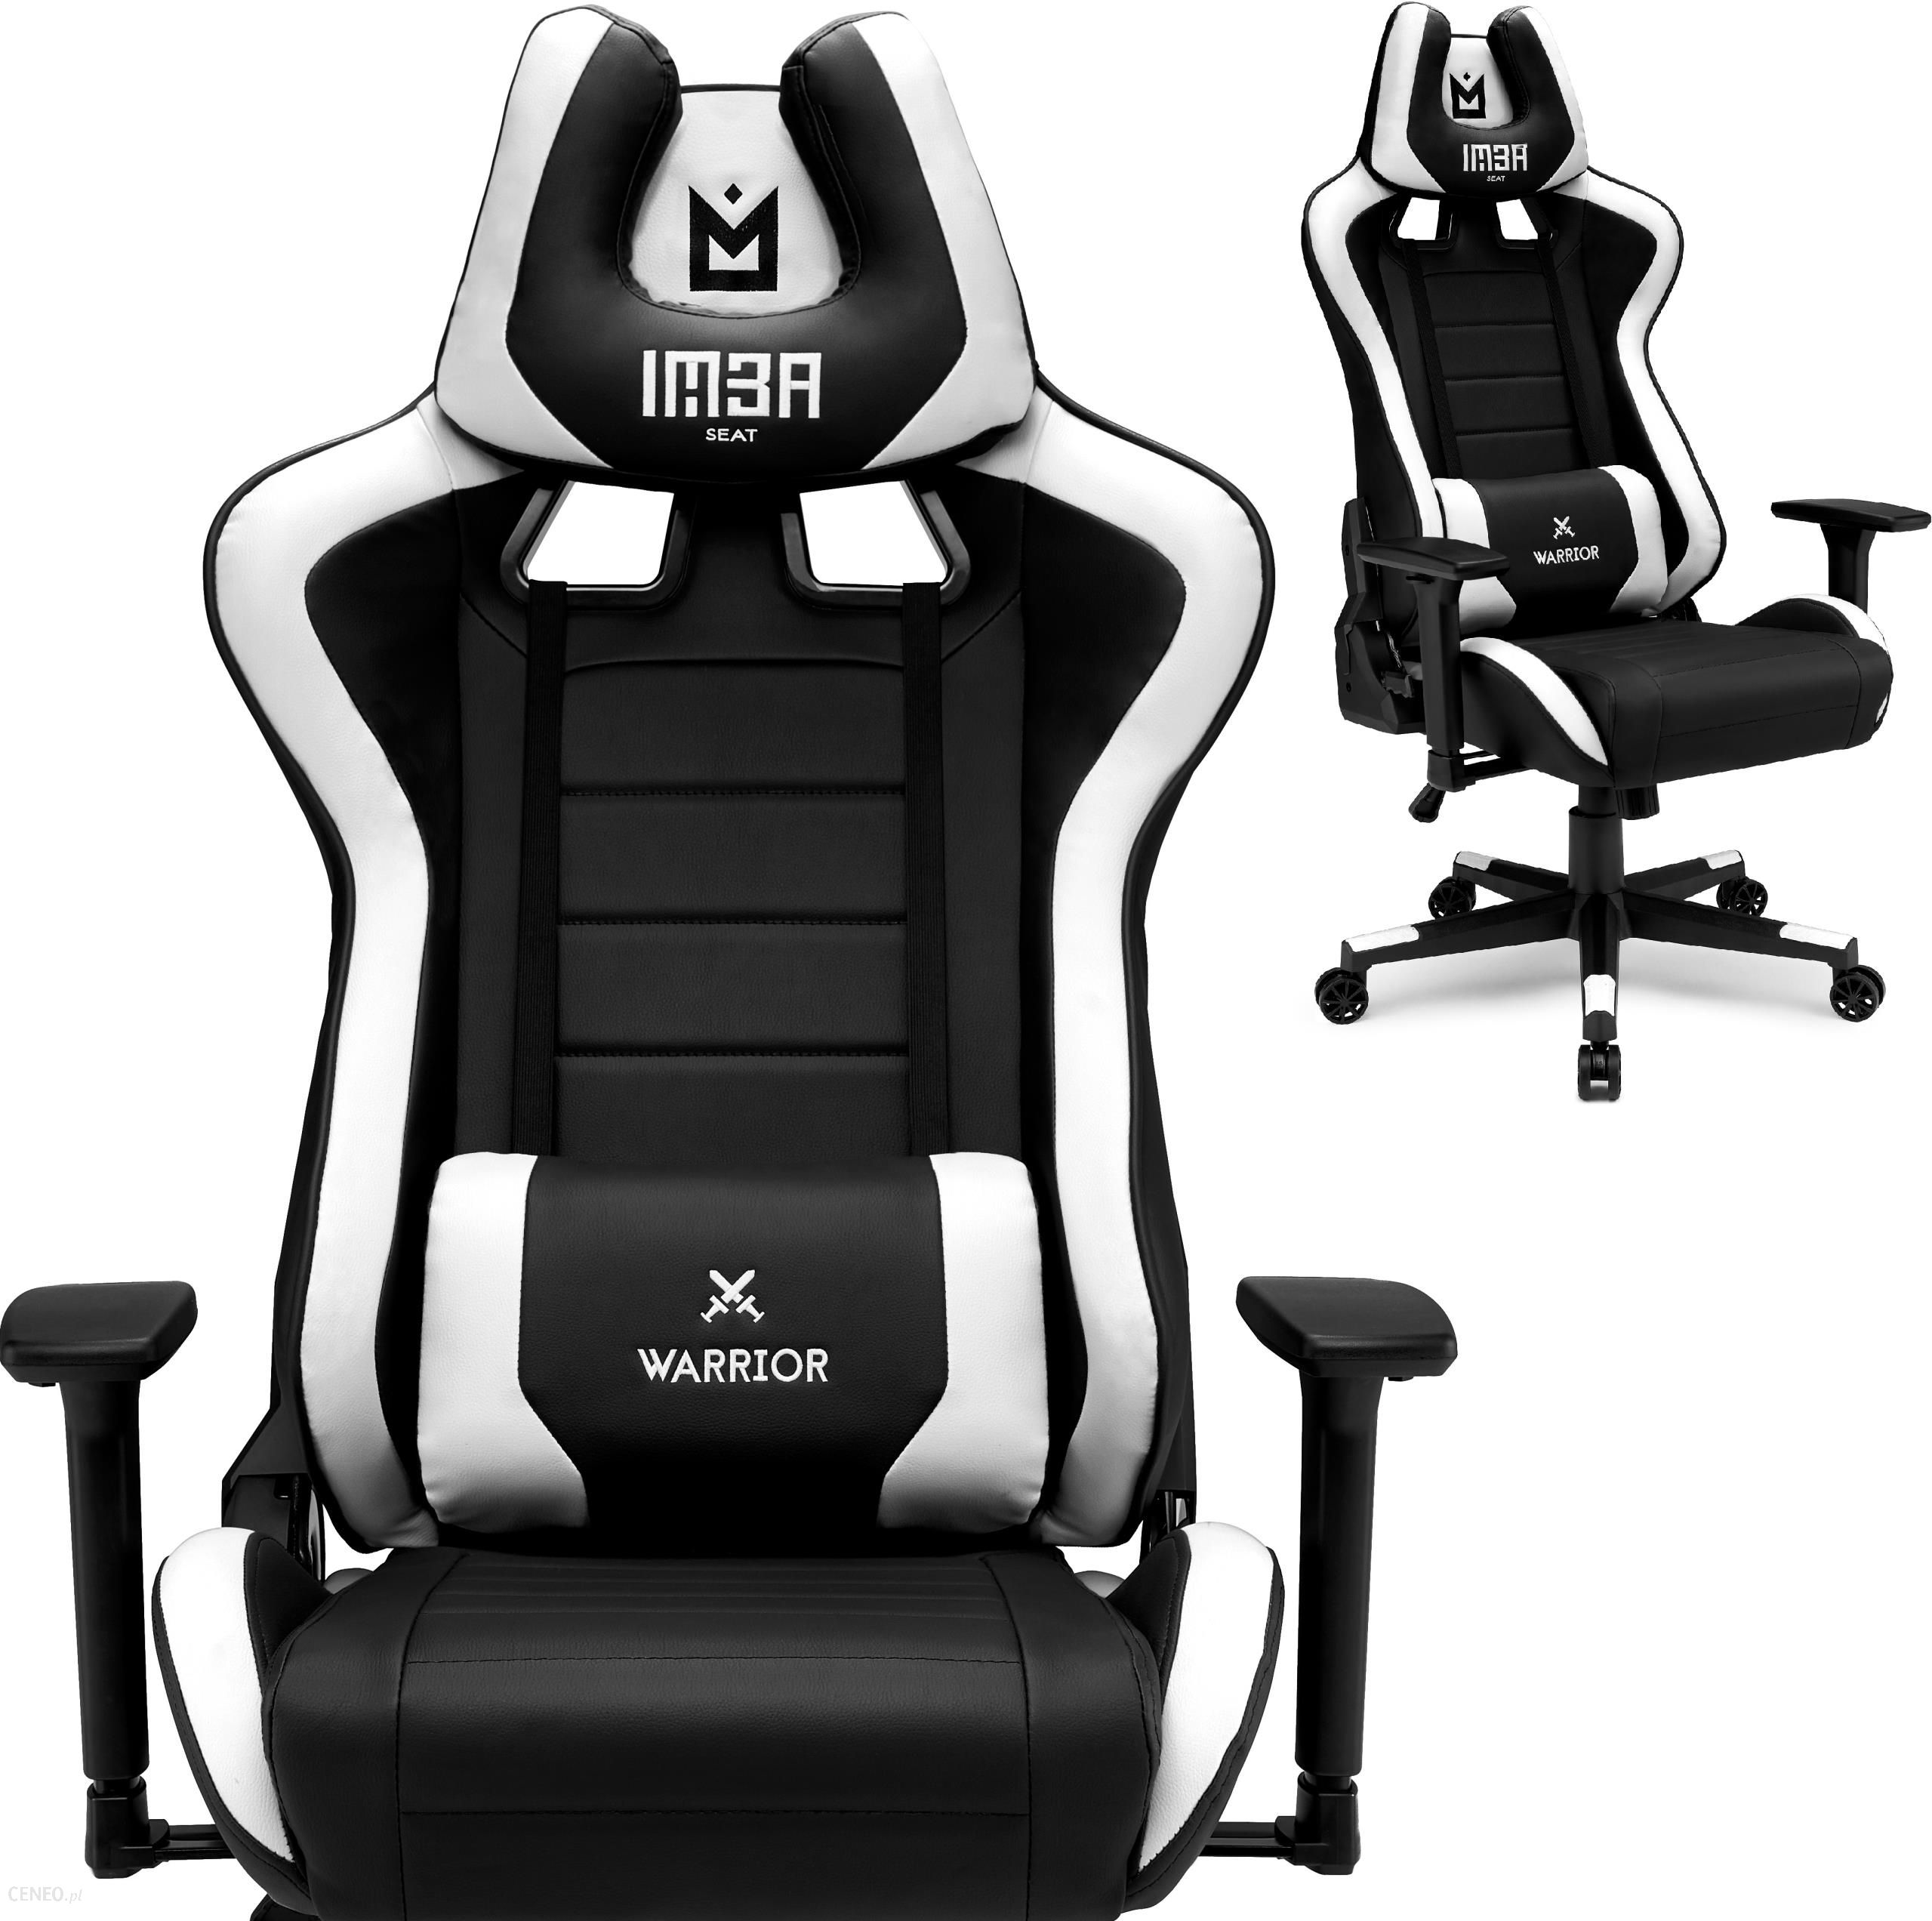 Imba Seat Fotel Gamingowy Warrior White